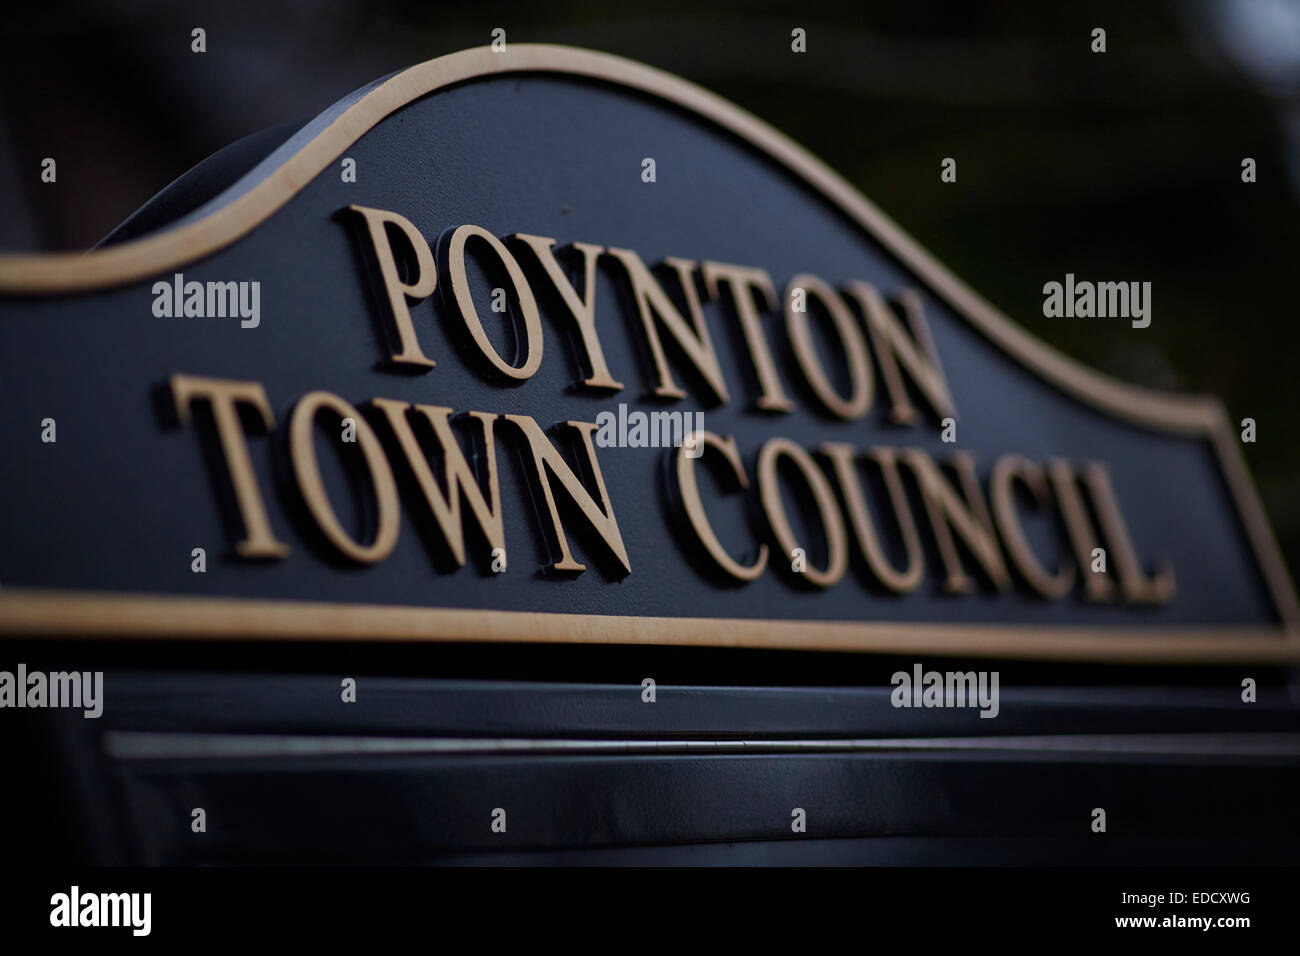 Poynton Village in Stockport Cheshire UK, Poynton Town Council sign - Stock Image